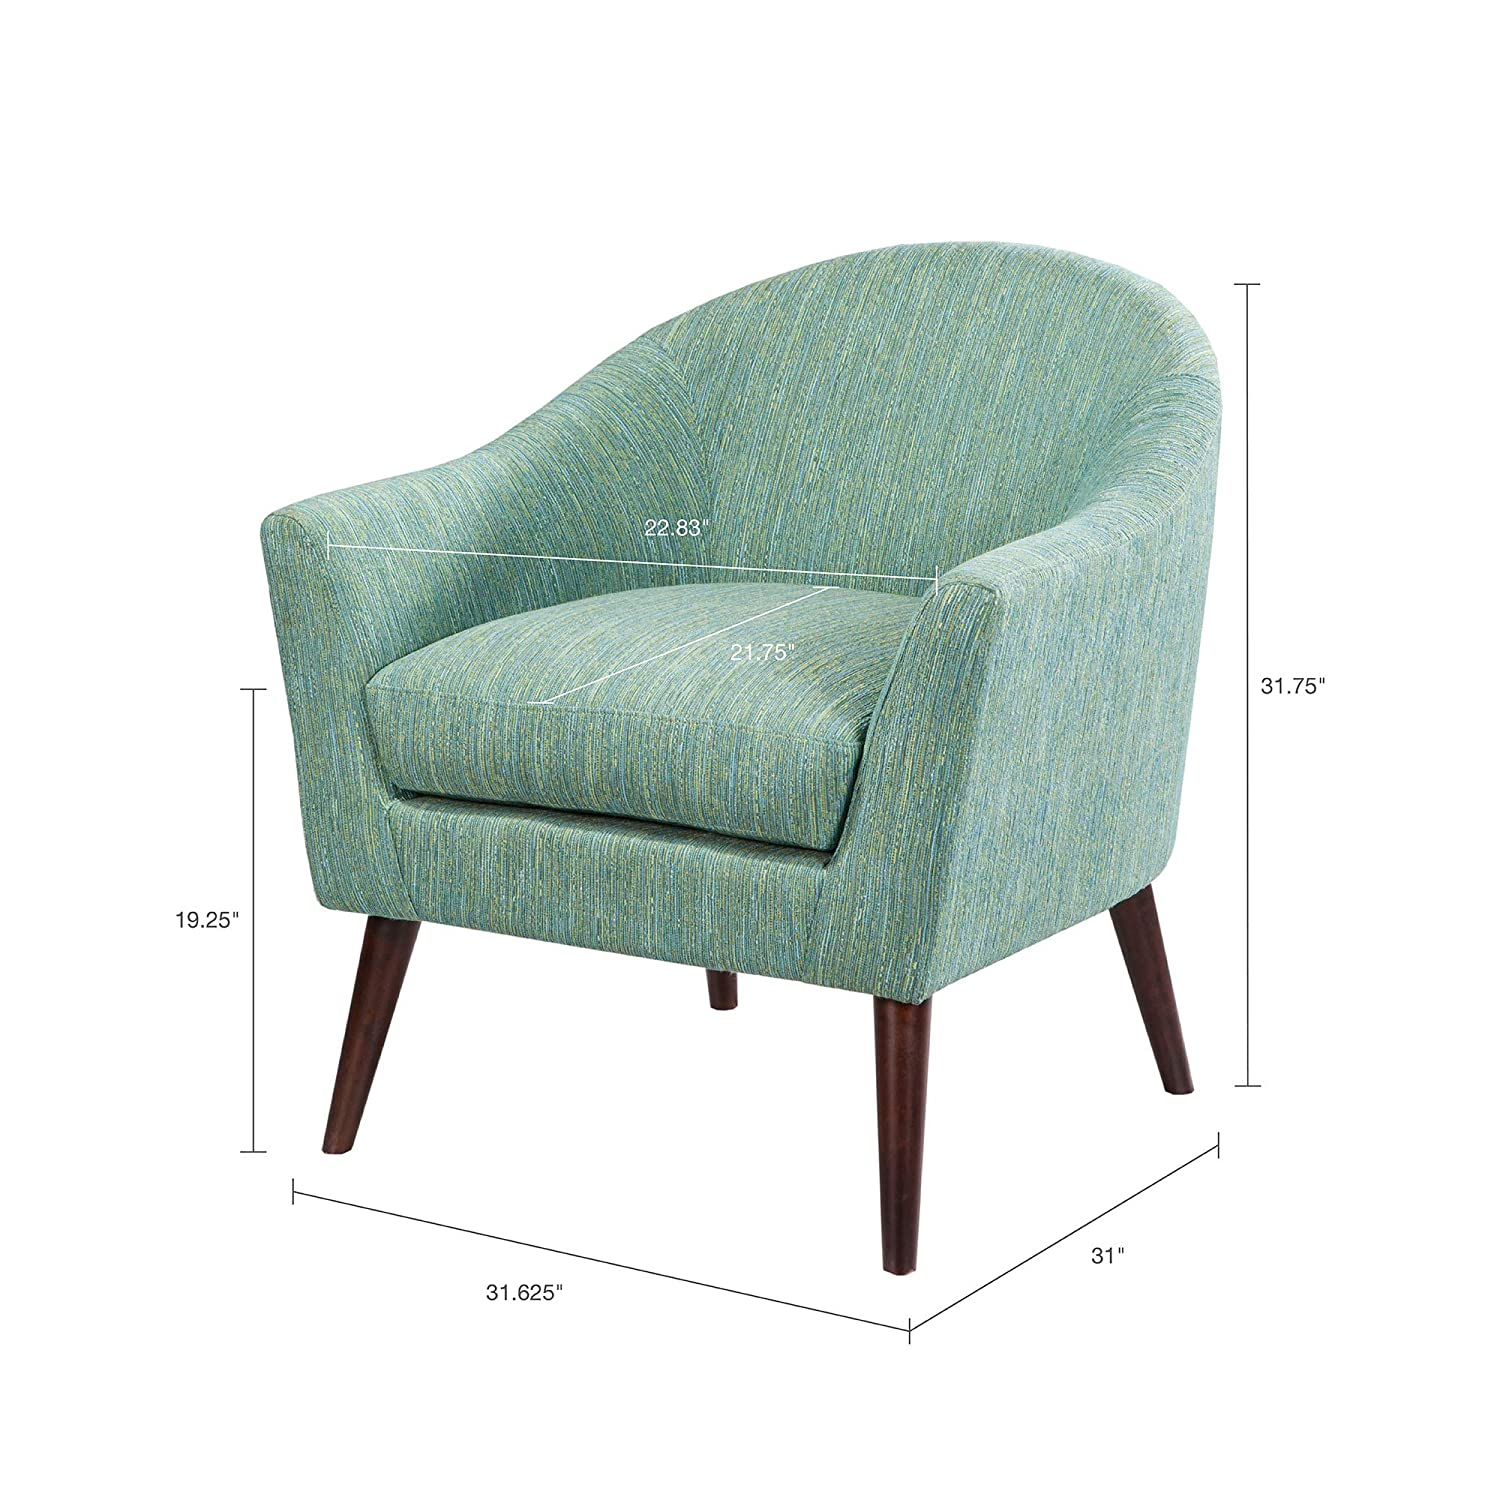 Madison park grayson accent chairs hardwood birch textured fabric living room chairs pale green modern classic style living room sofa furniture 1